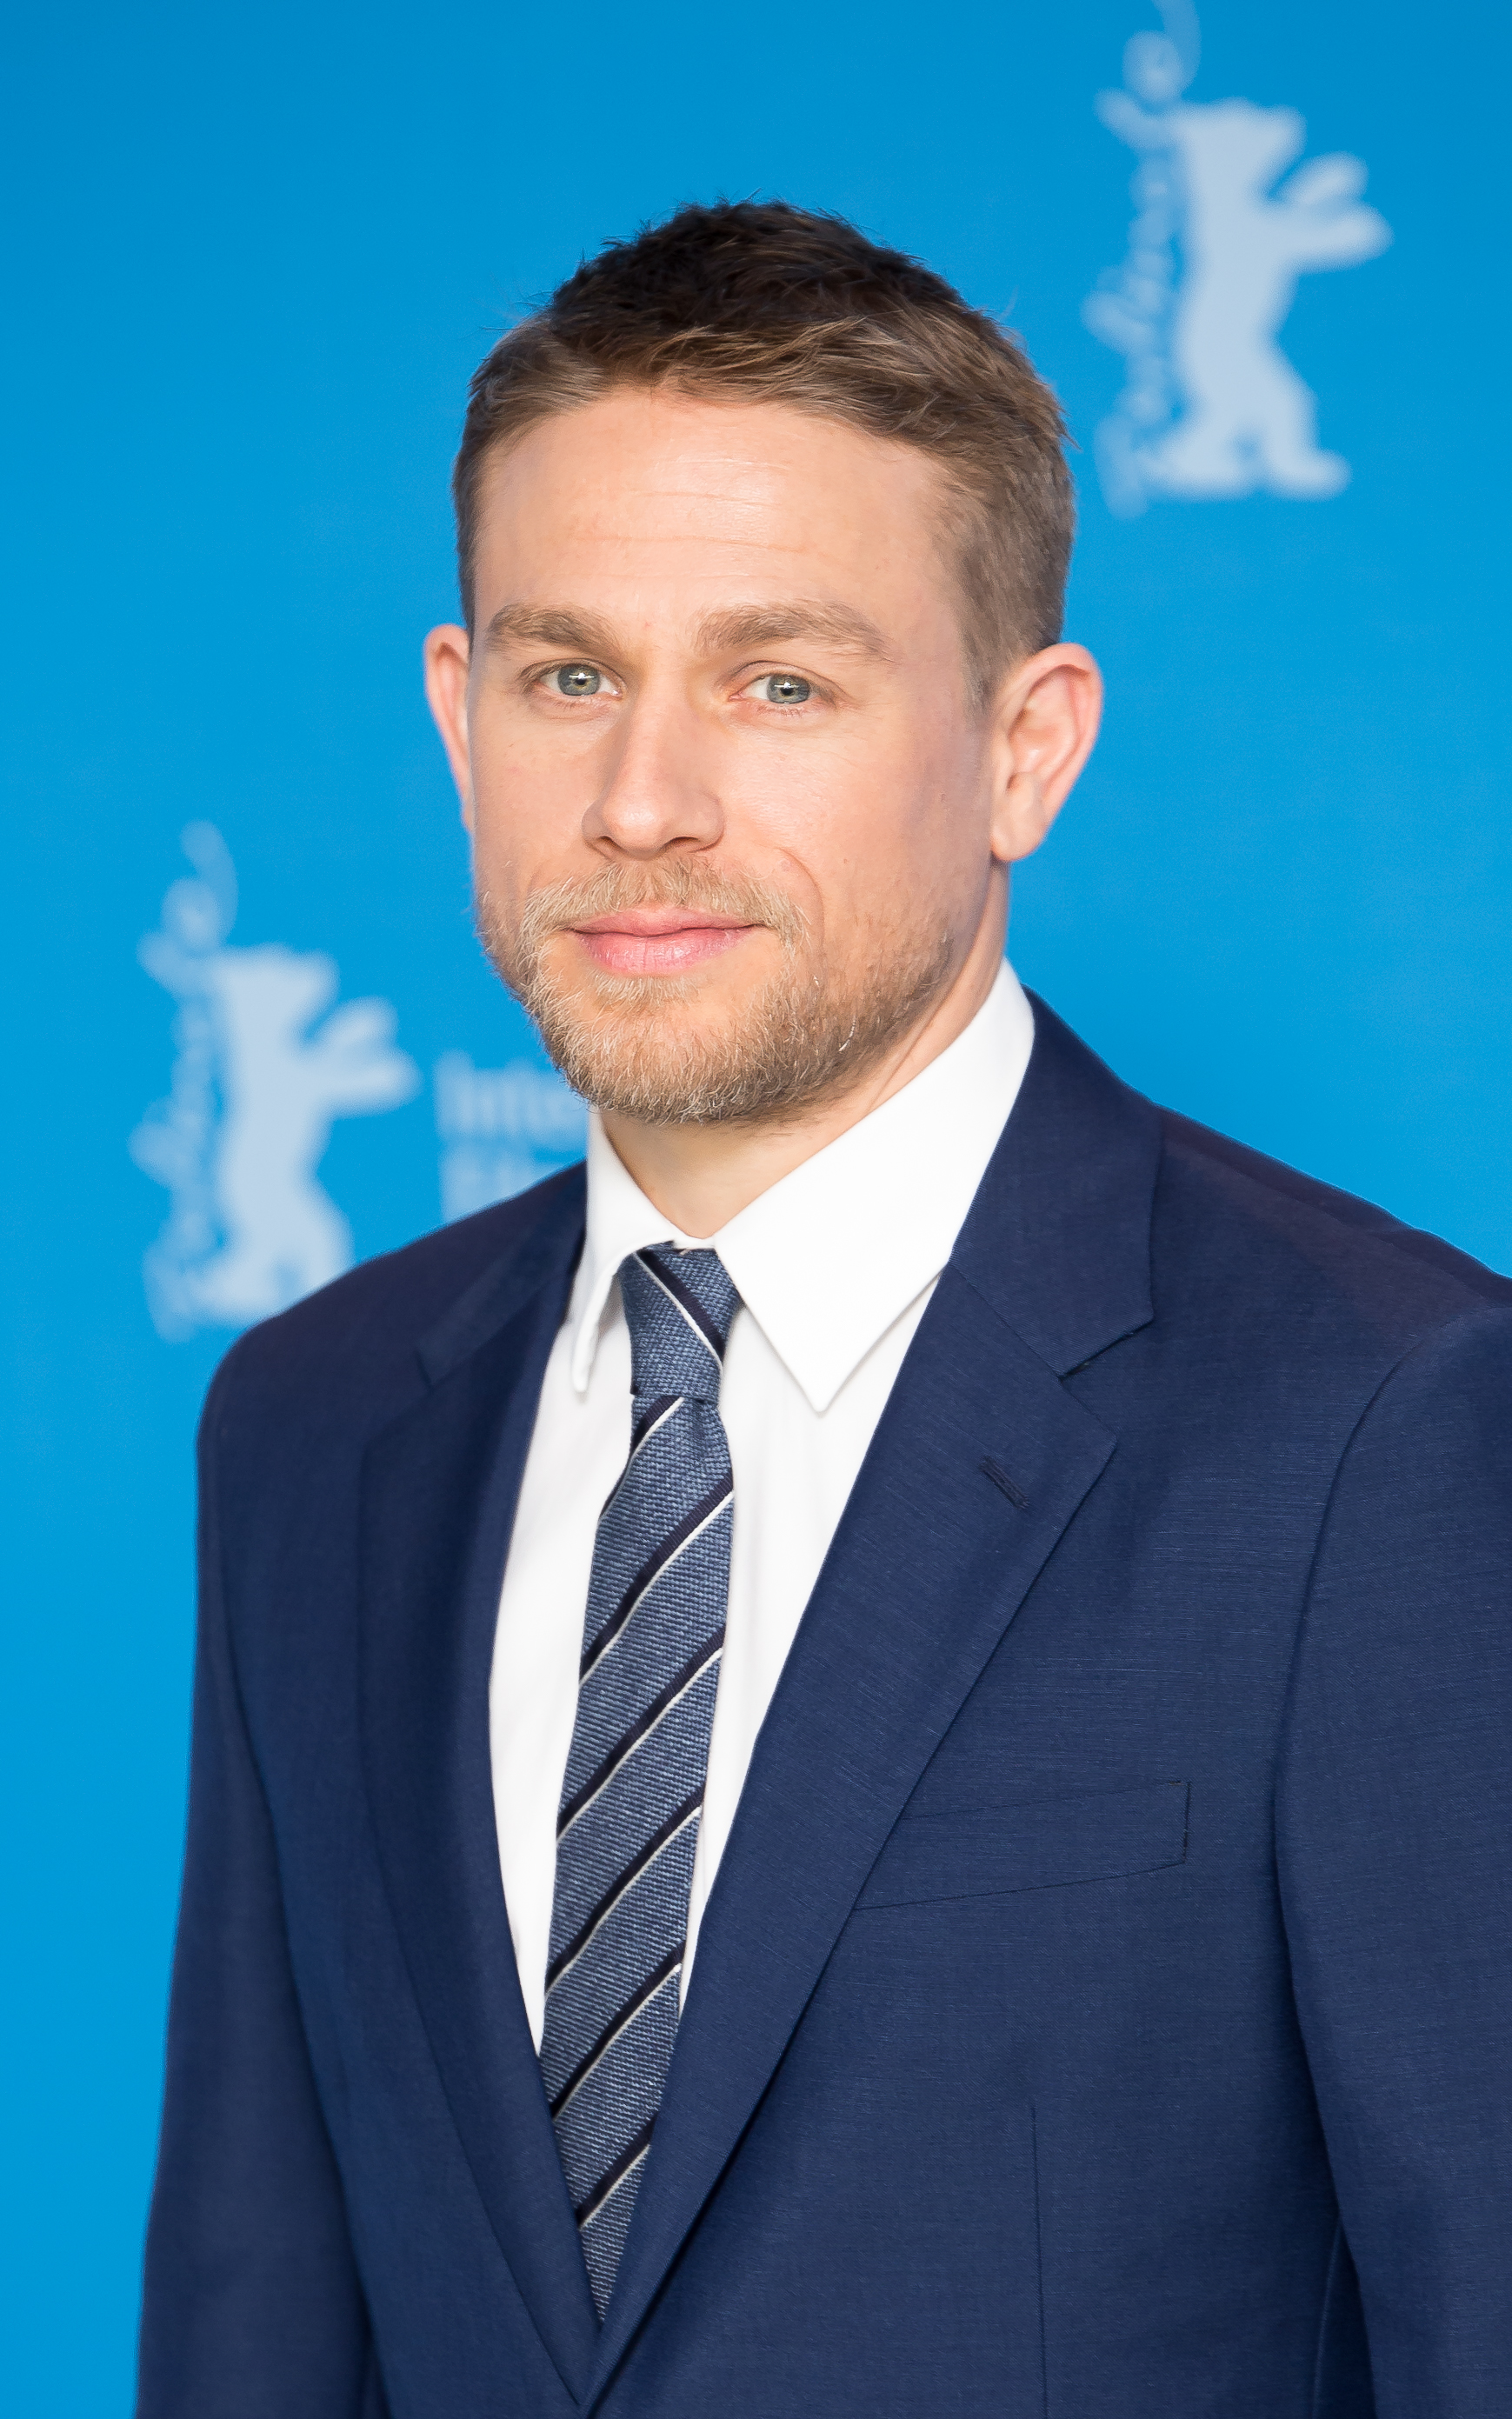 The 38-year old son of father William Hunnam and mother Jane Hunnam Charlie Hunnam in 2018 photo. Charlie Hunnam earned a unknown million dollar salary - leaving the net worth at 8 million in 2018